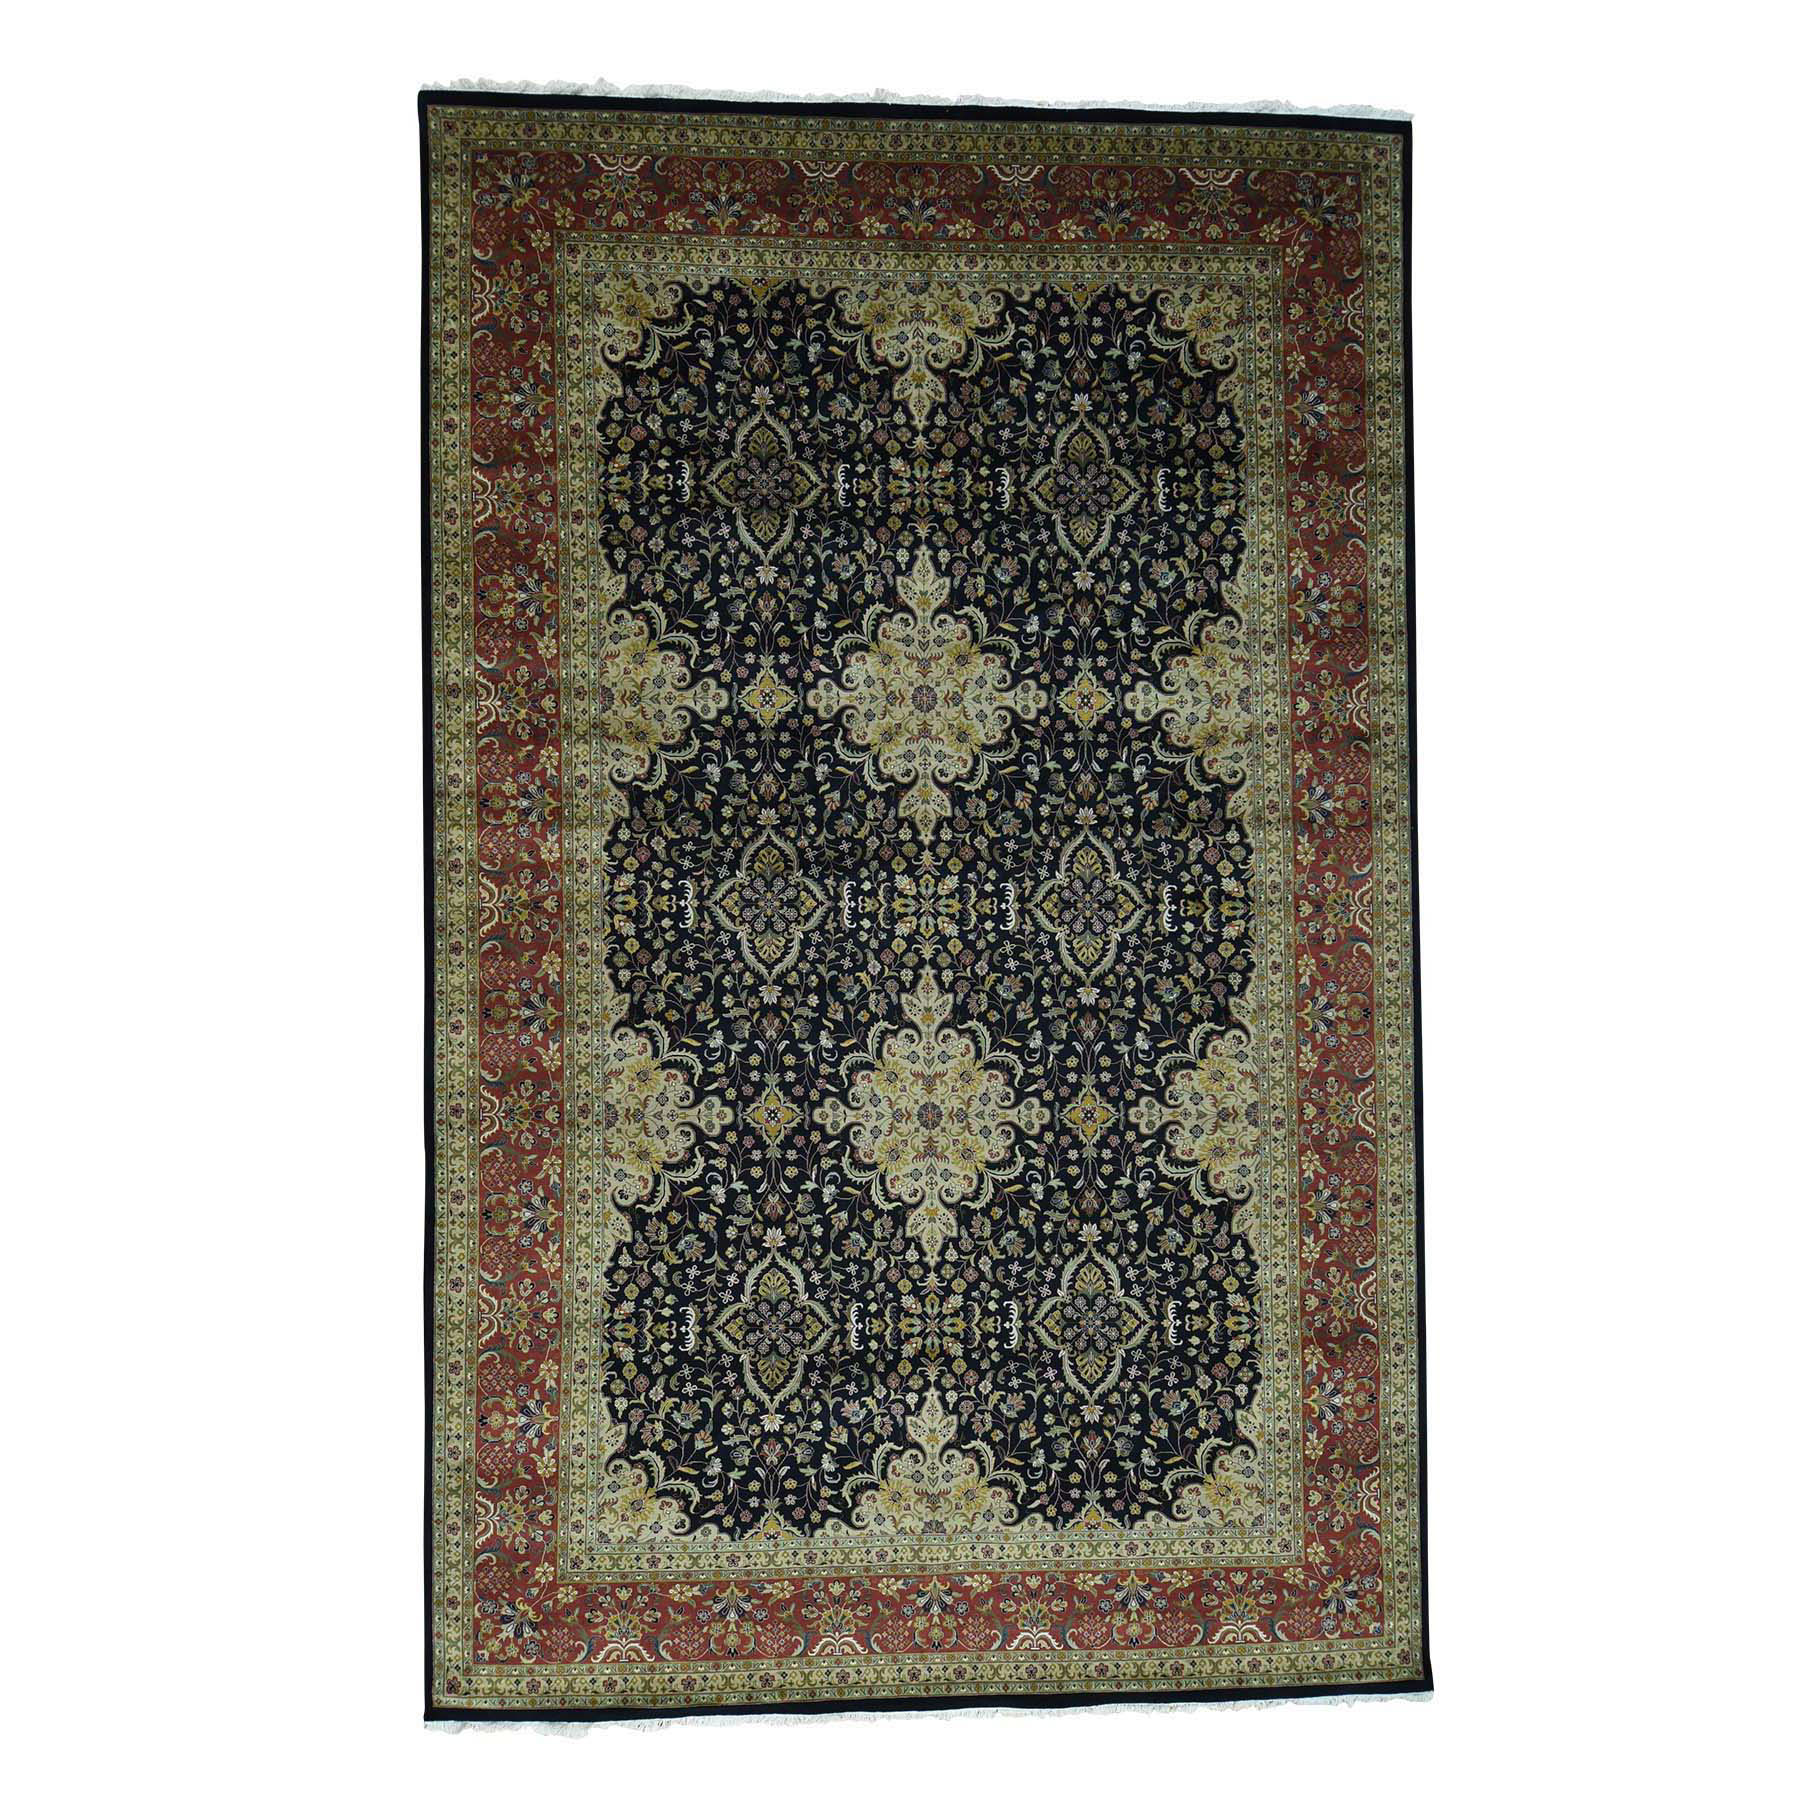 Pirniakan Collection Hand Knotted Black Rug No: 0171902